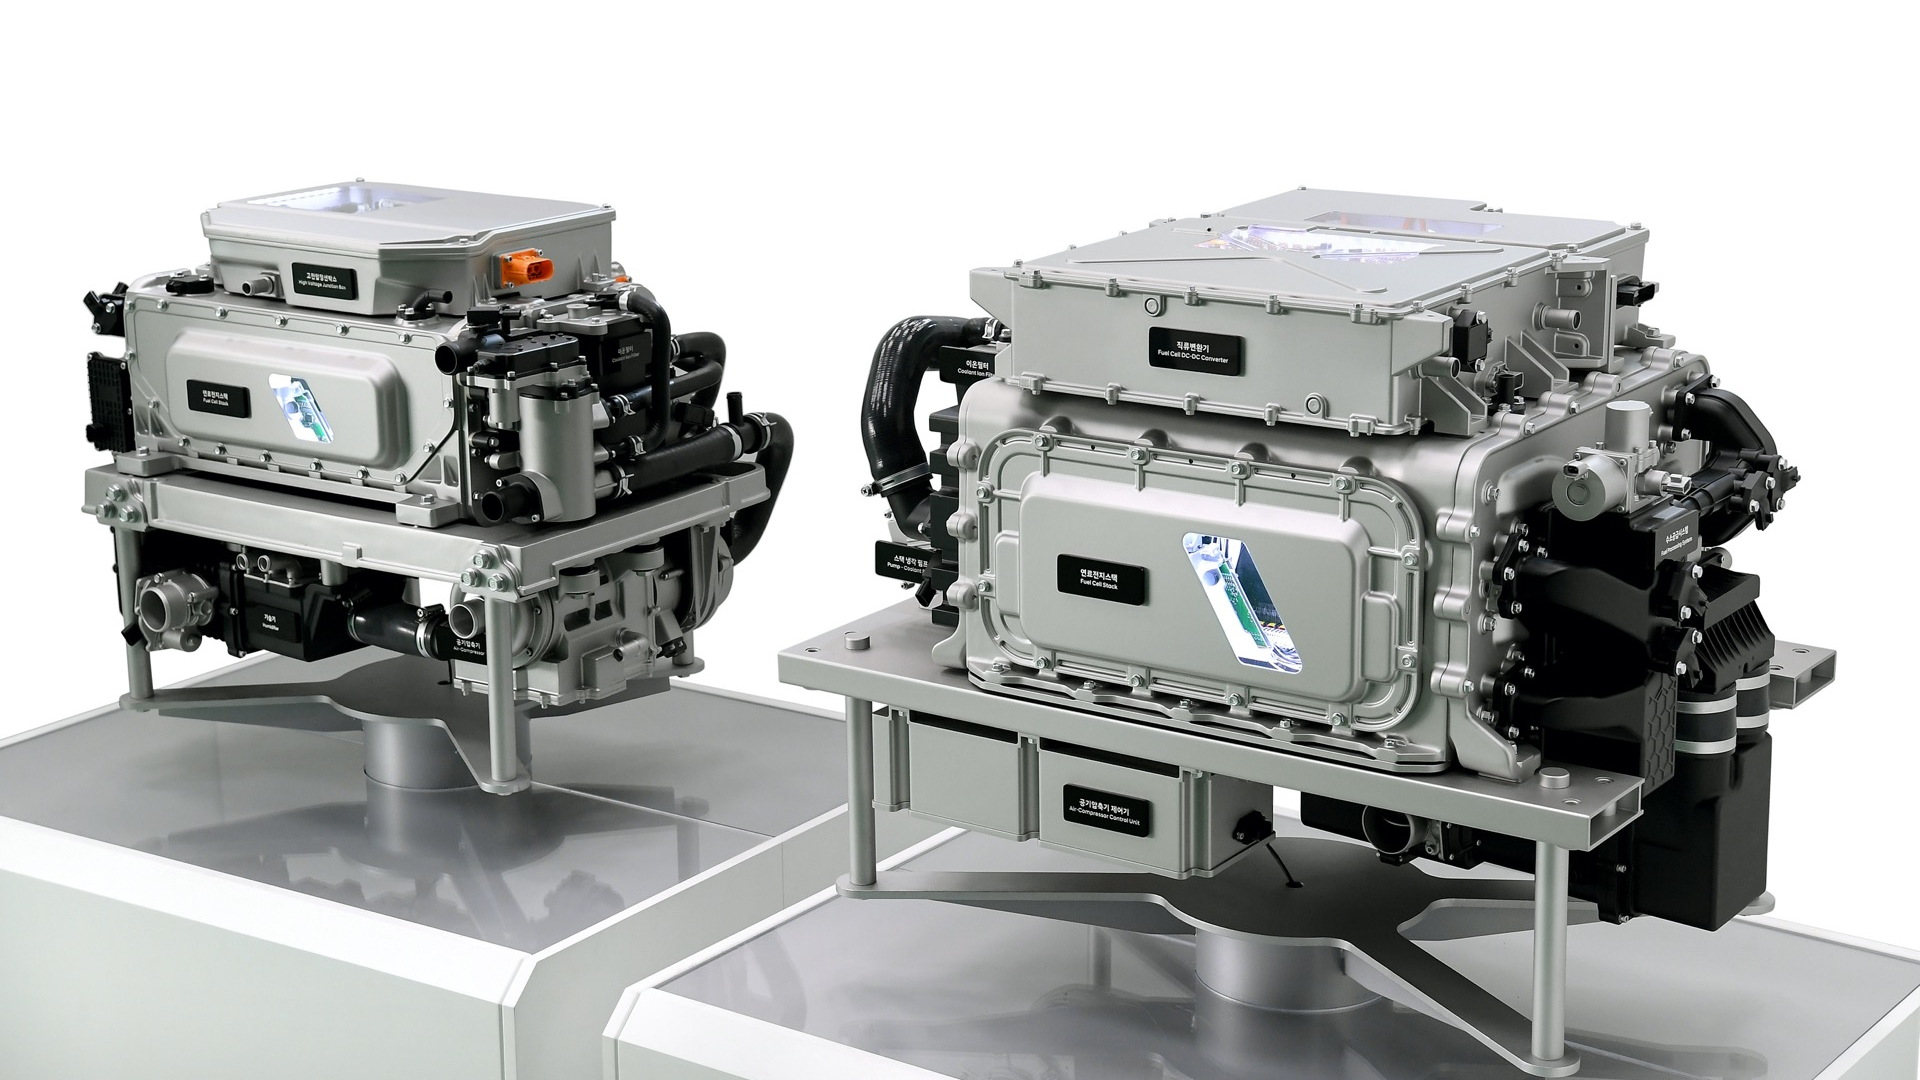 Hyundai next-generation fuel-cell systems due in 2023